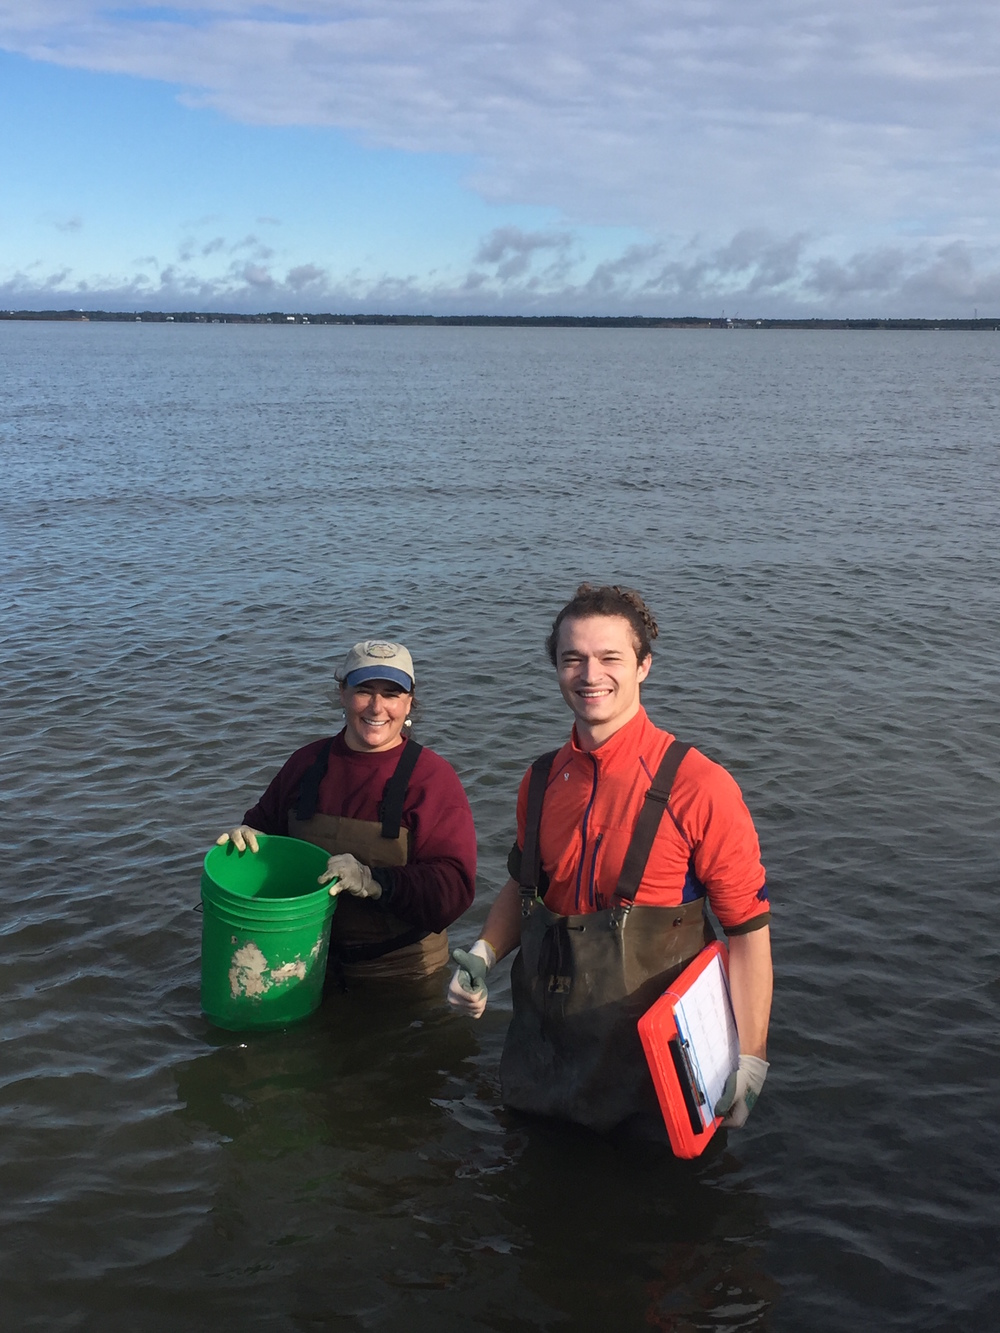 Judy Haner of The Nature Conservancy and Mobile Baykeeper Program Coordinator Cade Kistler celebrate a successful day monitoring oyster in Portersville Bay.